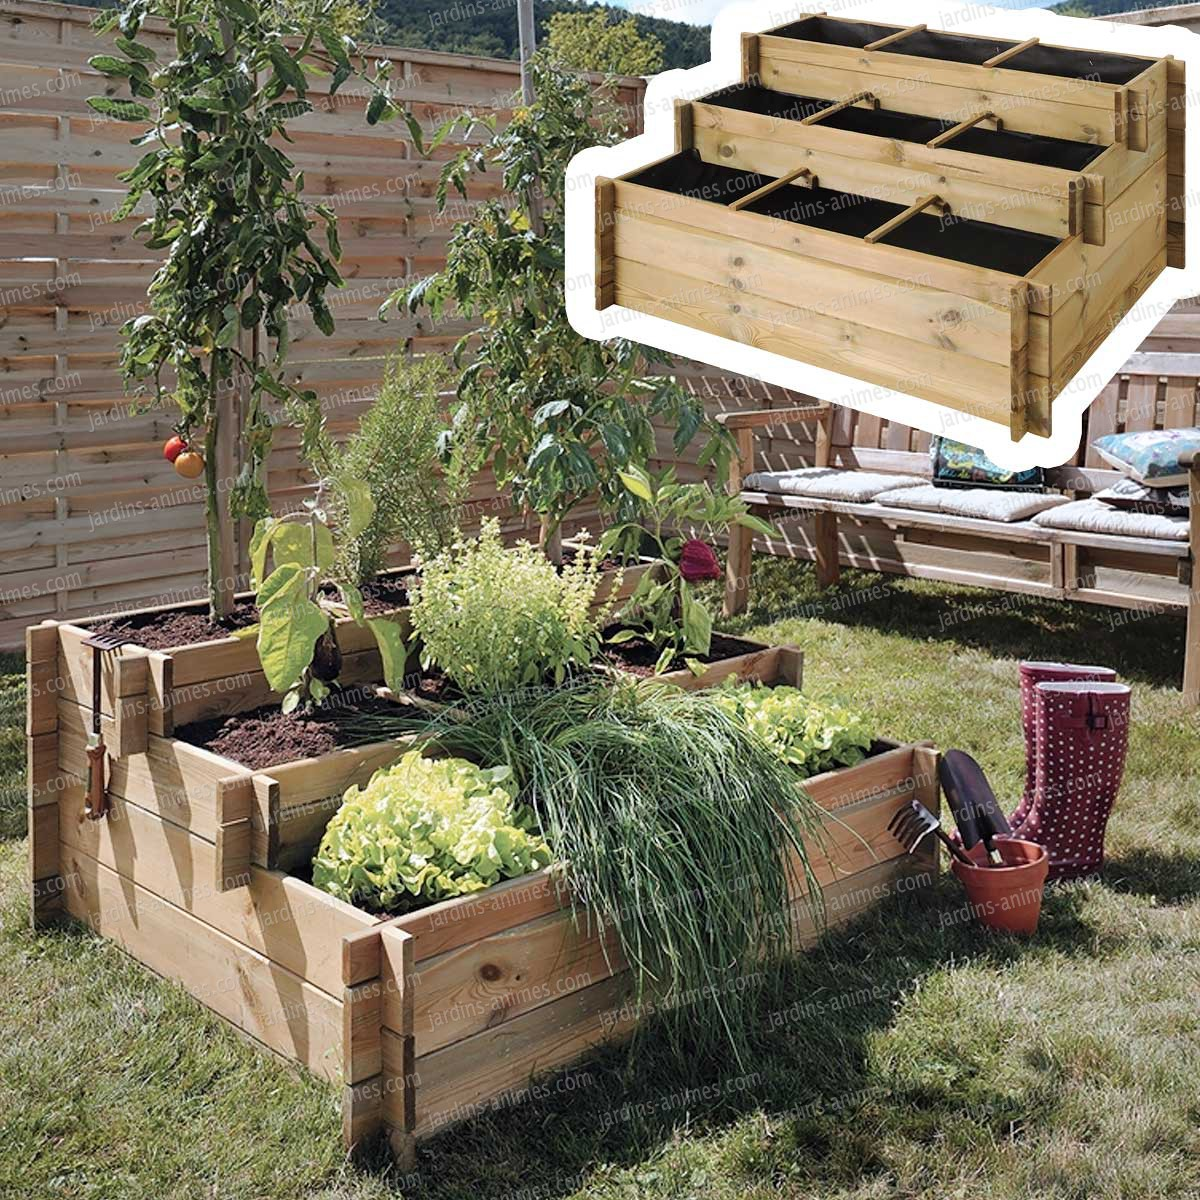 carr potager sur pied carrefour. Black Bedroom Furniture Sets. Home Design Ideas